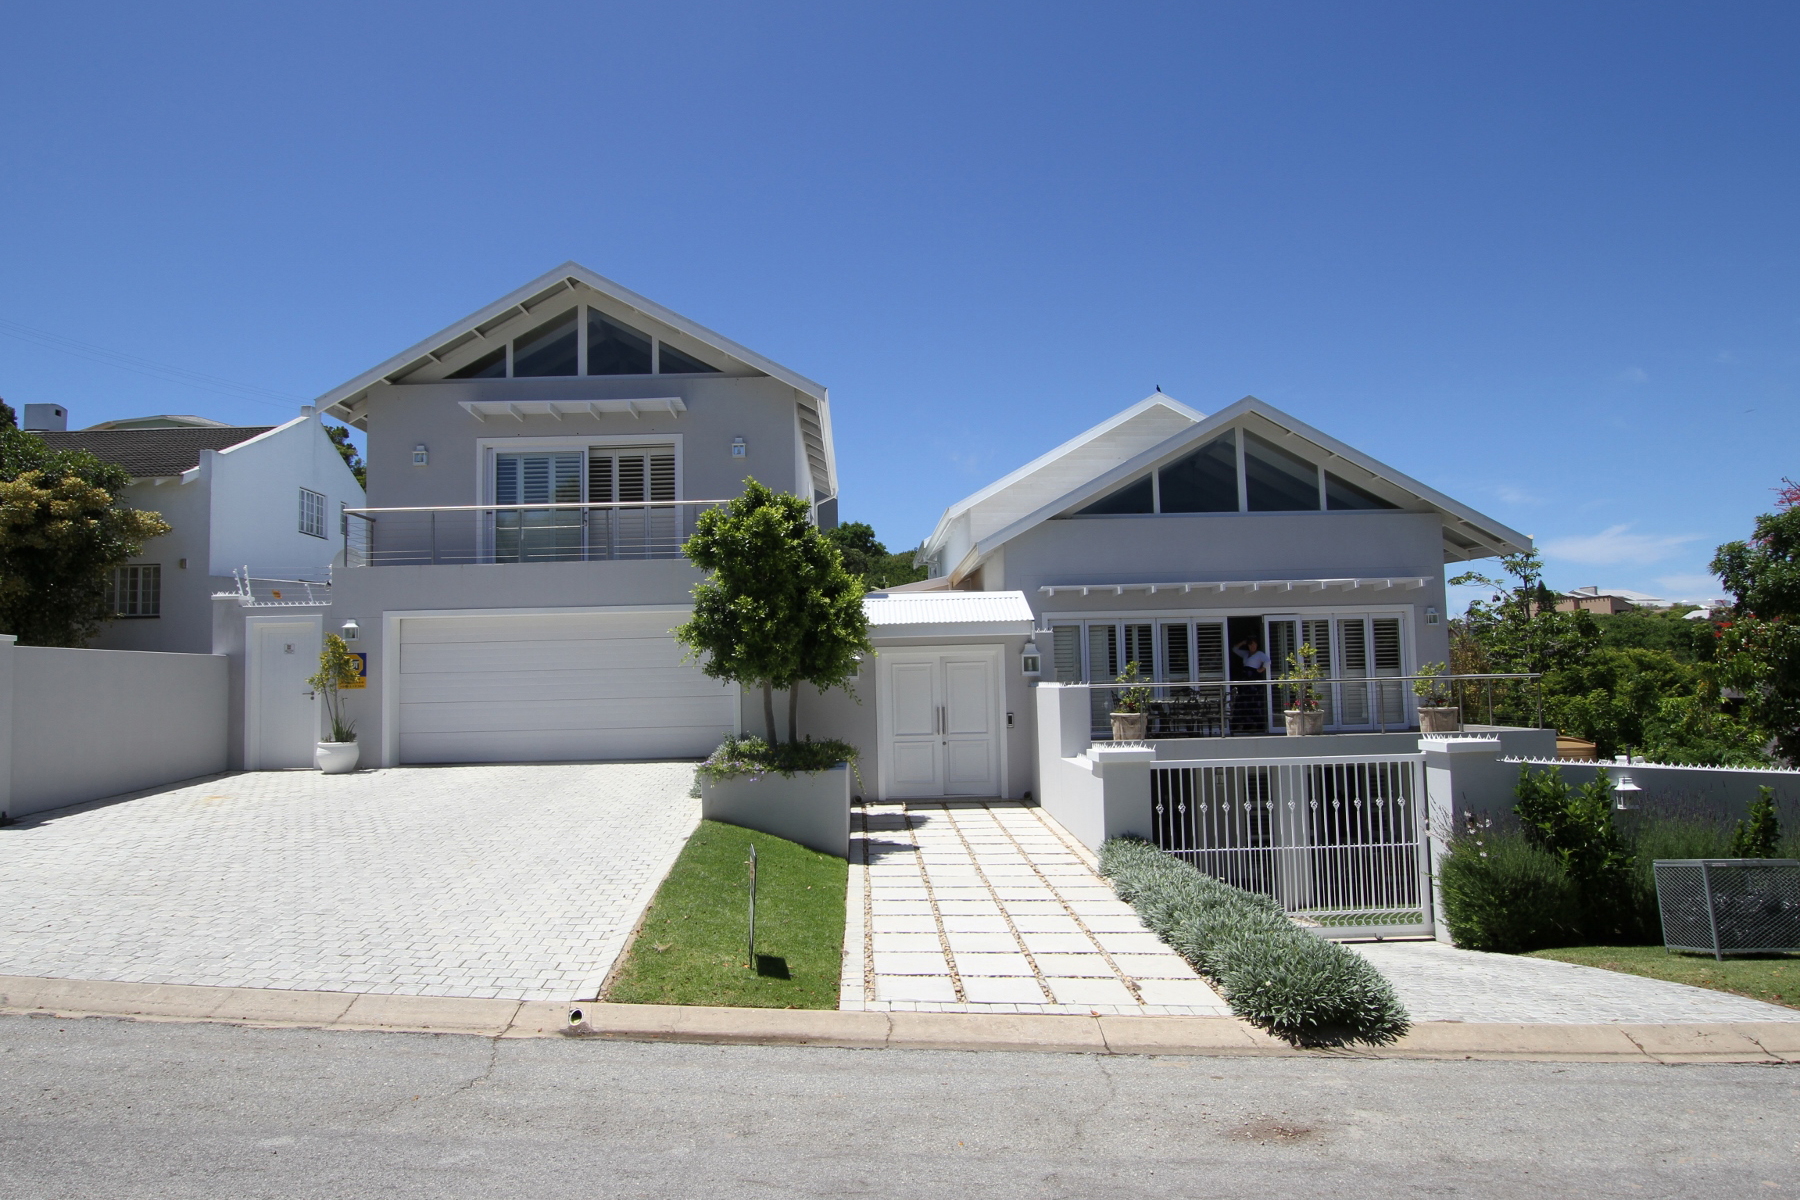 Single Family Home for Sale at Stableford Drive Plettenberg Bay, Western Cape 6600 South Africa